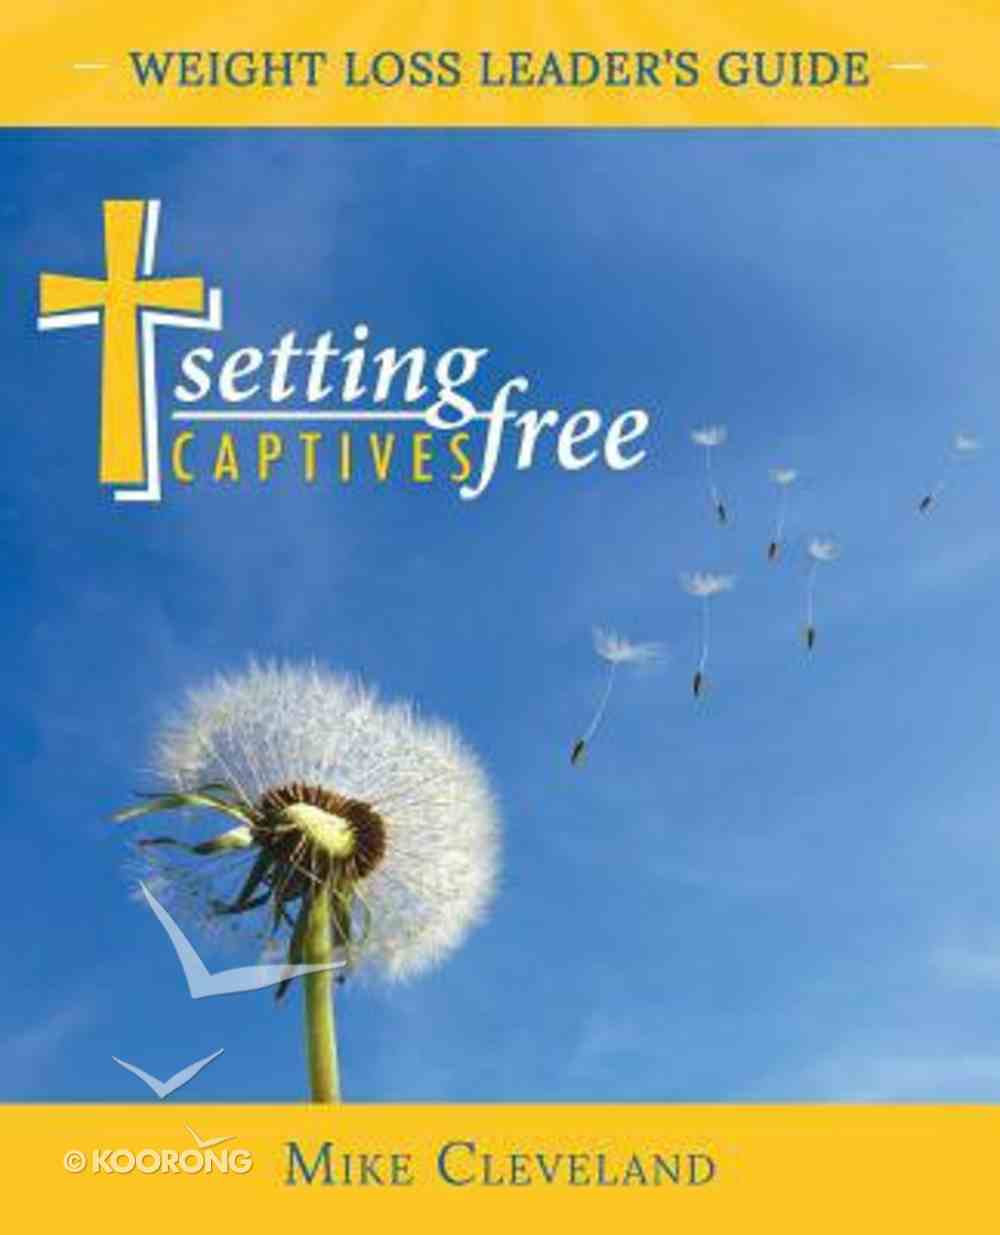 Setting Captives Free: Weight Loss (Leader's Guide) Paperback